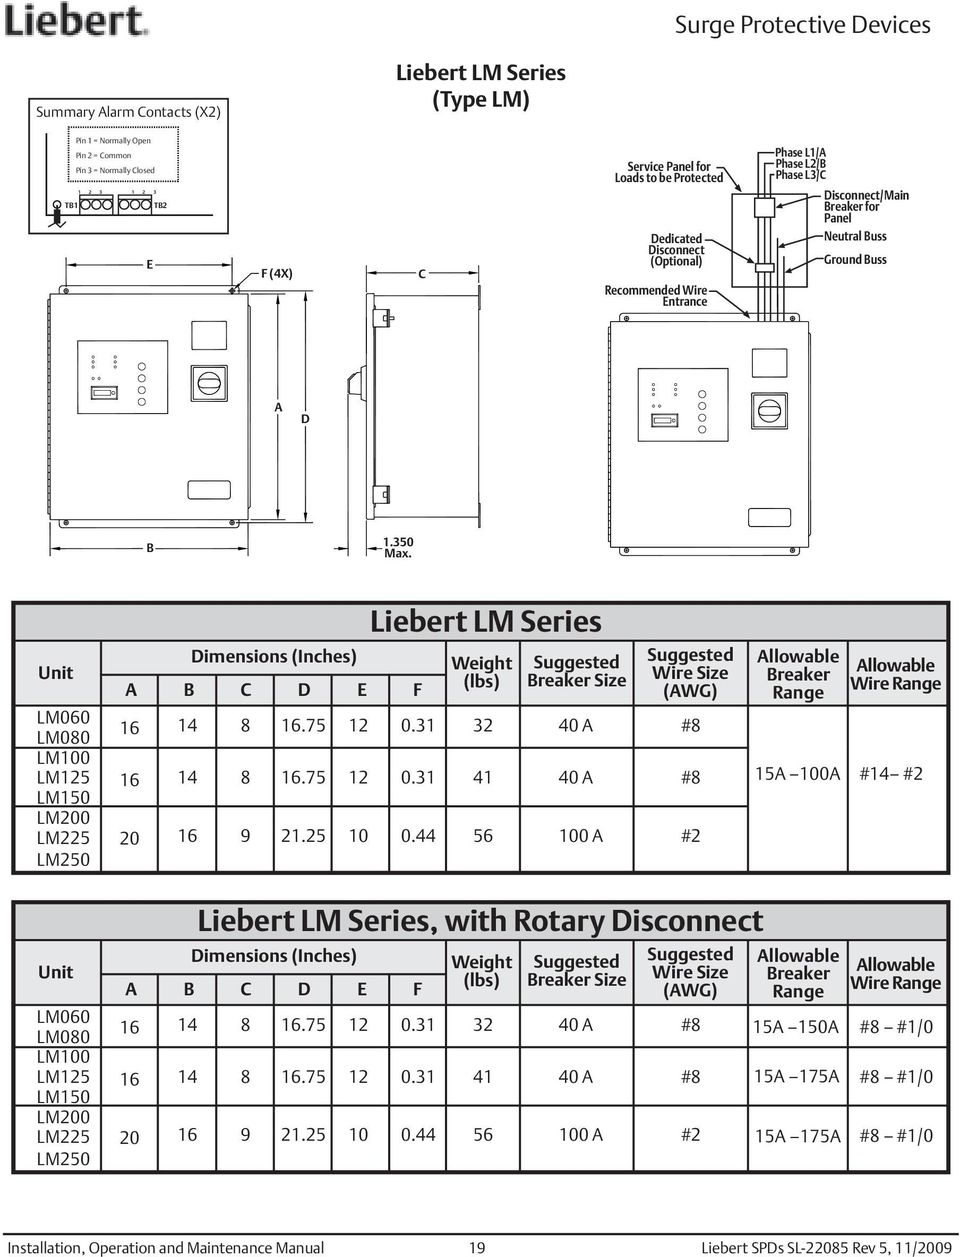 Liebert LM Series Unit LM060 LM080 LM100 LM125 LM150 LM200 LM225 LM250 Dimensions (Inches) D E F 16 16 20 14 14 16 8 8 9 16.75 16.75 21.25 12 12 10 0.31 0.